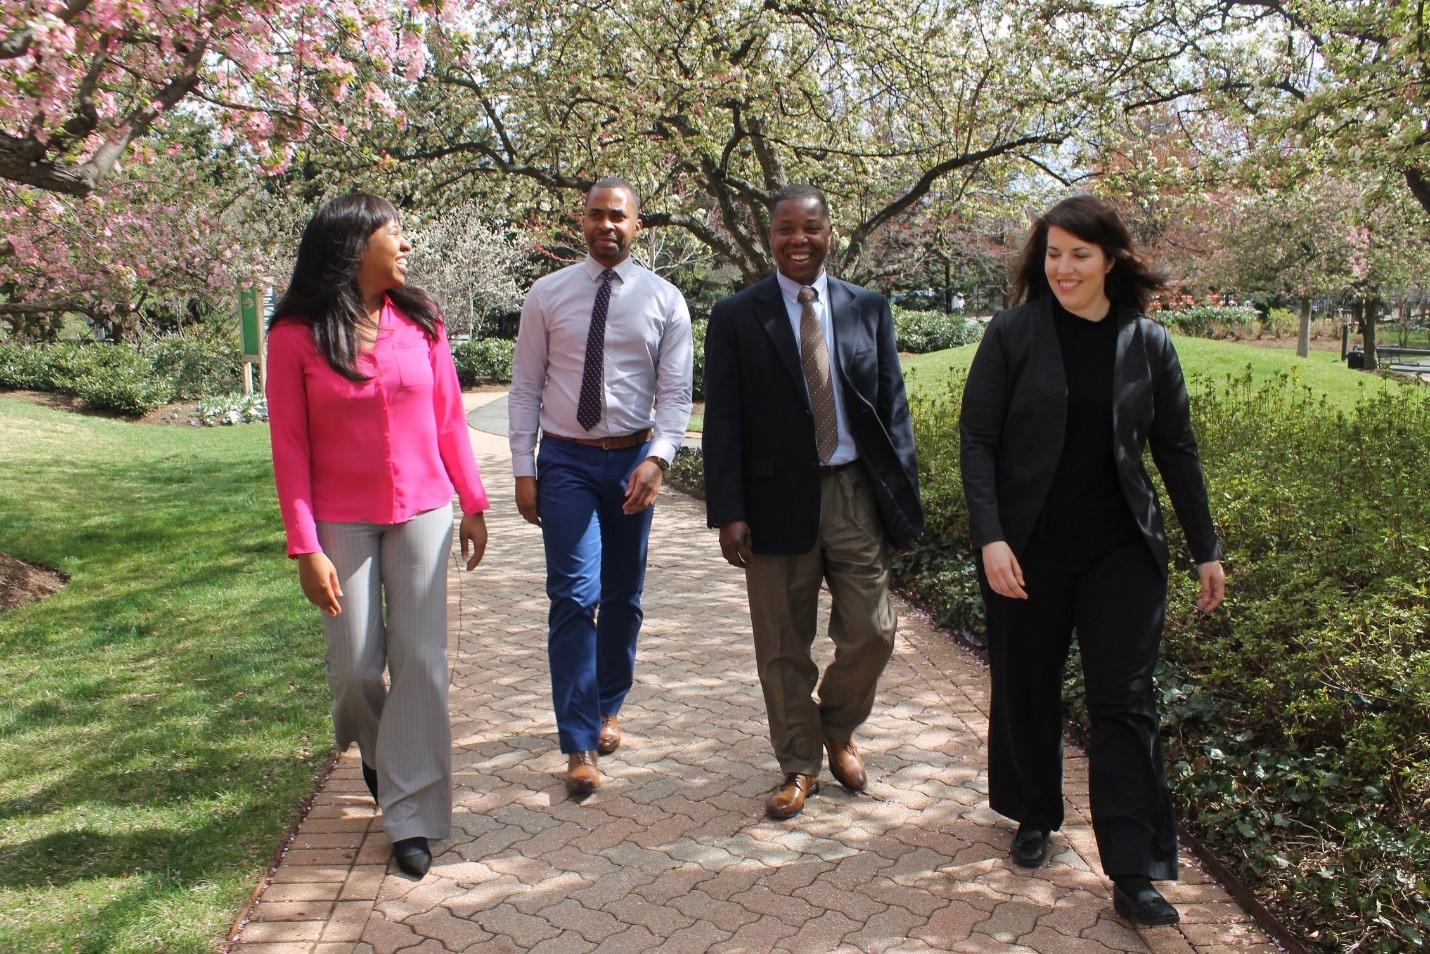 April Miller, Nick Curry, Freeman Nlandu and Jennifer Griffin, from left, enjoy the cherry blossoms outside the Taylor Building in Crystal City, Virginia. The Rotational Assignment Program demonstrates the Army's commitment to participating employees while also expanding the employees' knowledge of DOD's security cooperation mission.